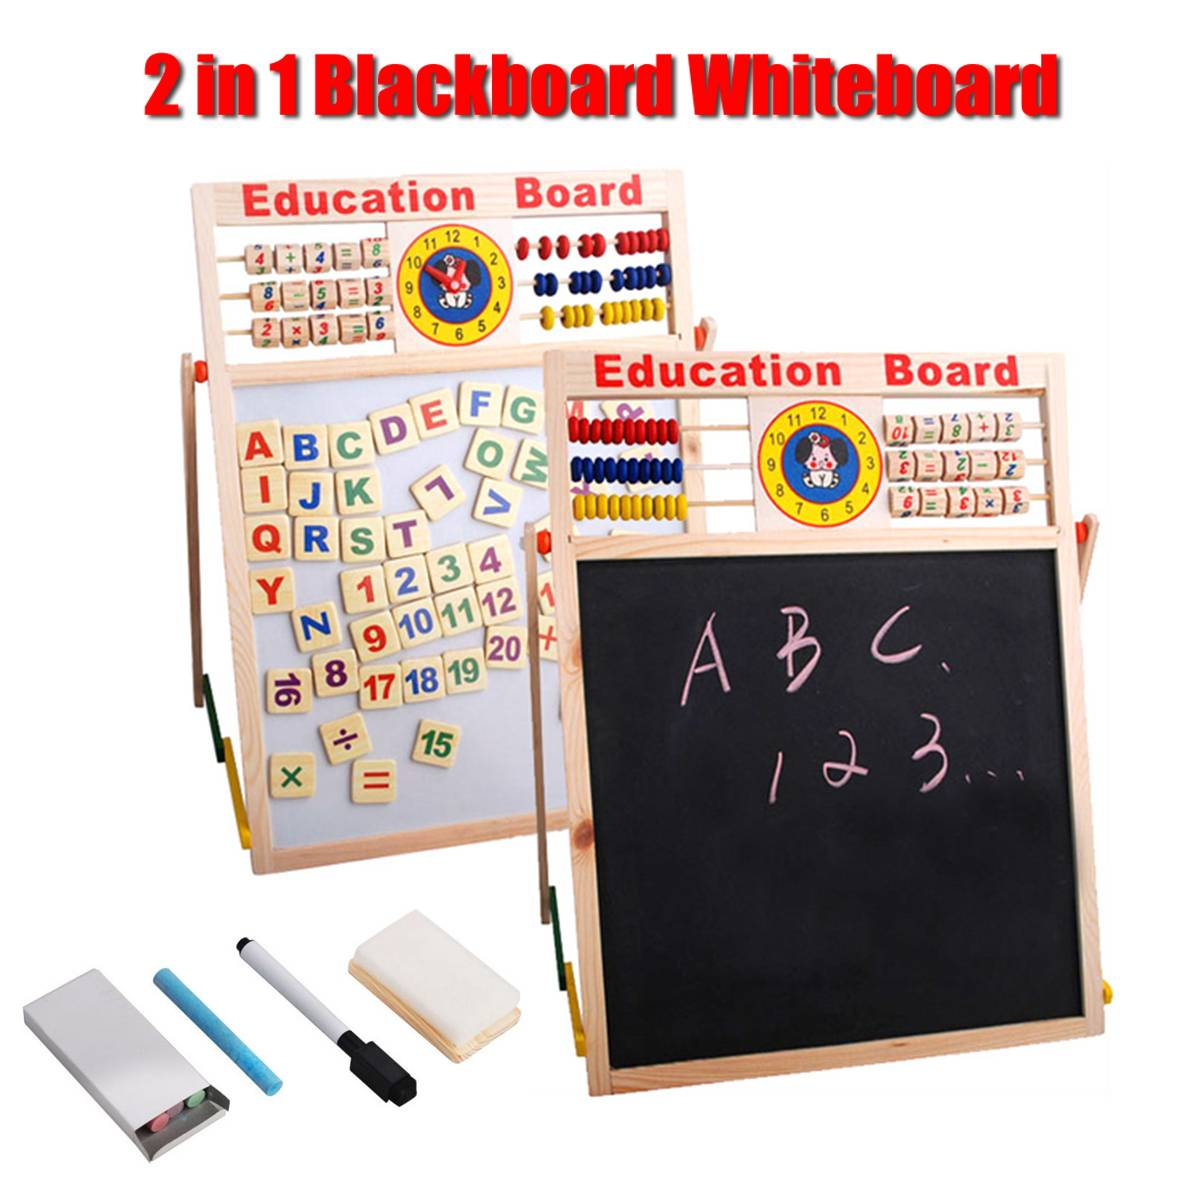 2 In 1 Wooden Blackboard Whiteboard Kit Children Drawing Writing Memo Board Alphabet Number Magnet Chalk Pen Kids Gifts Foldable